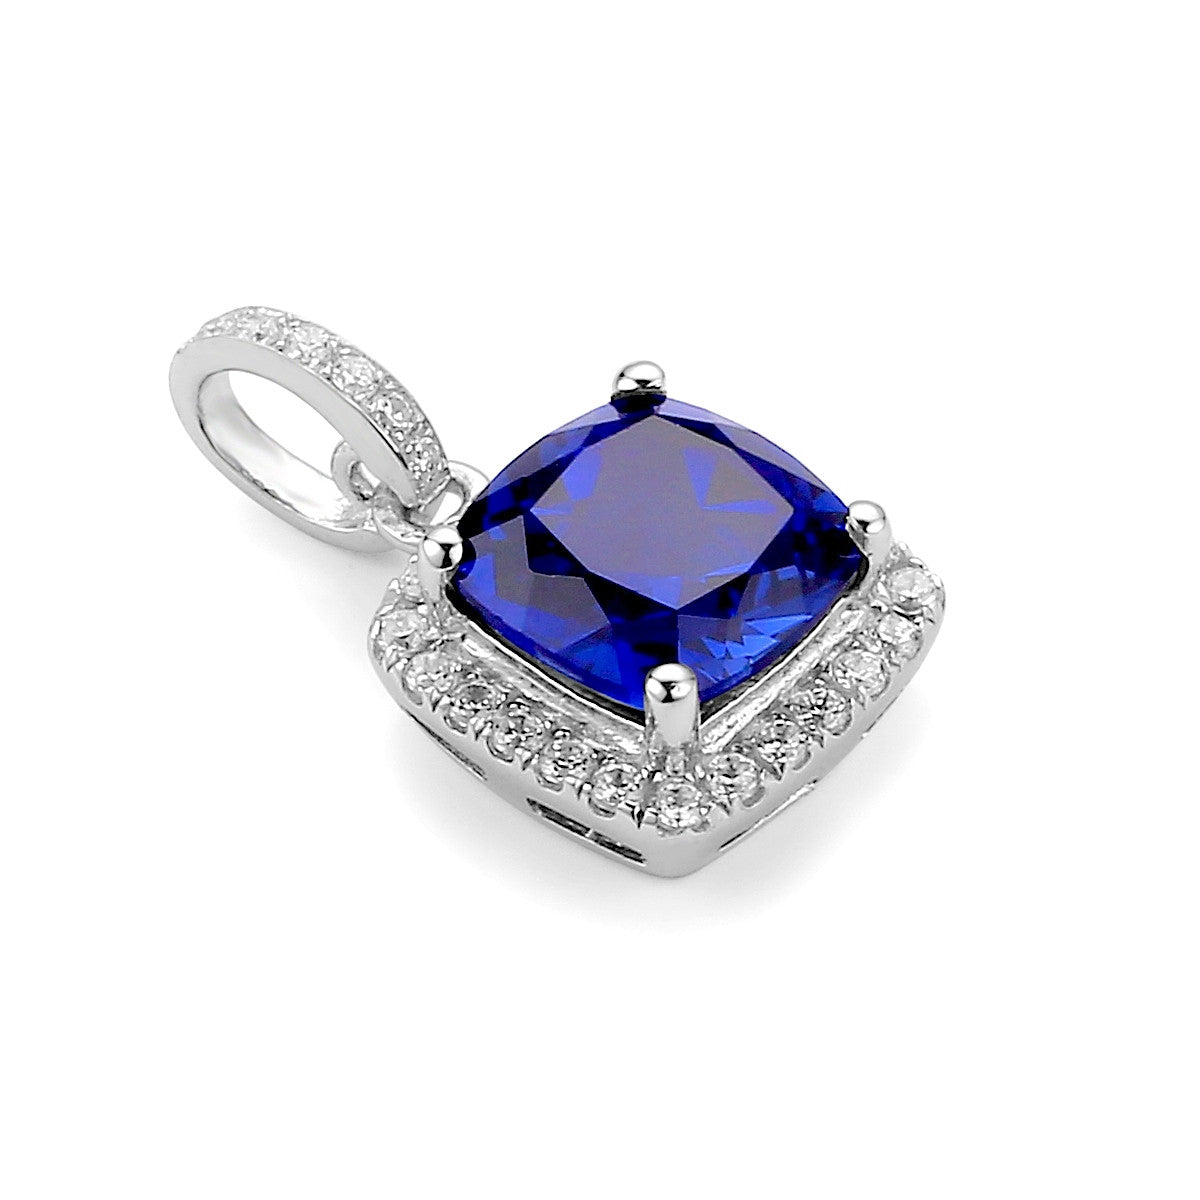 engagement upscale crop the scale boodles subsampling zoom ring sapphire cushion shop false cut product vintage